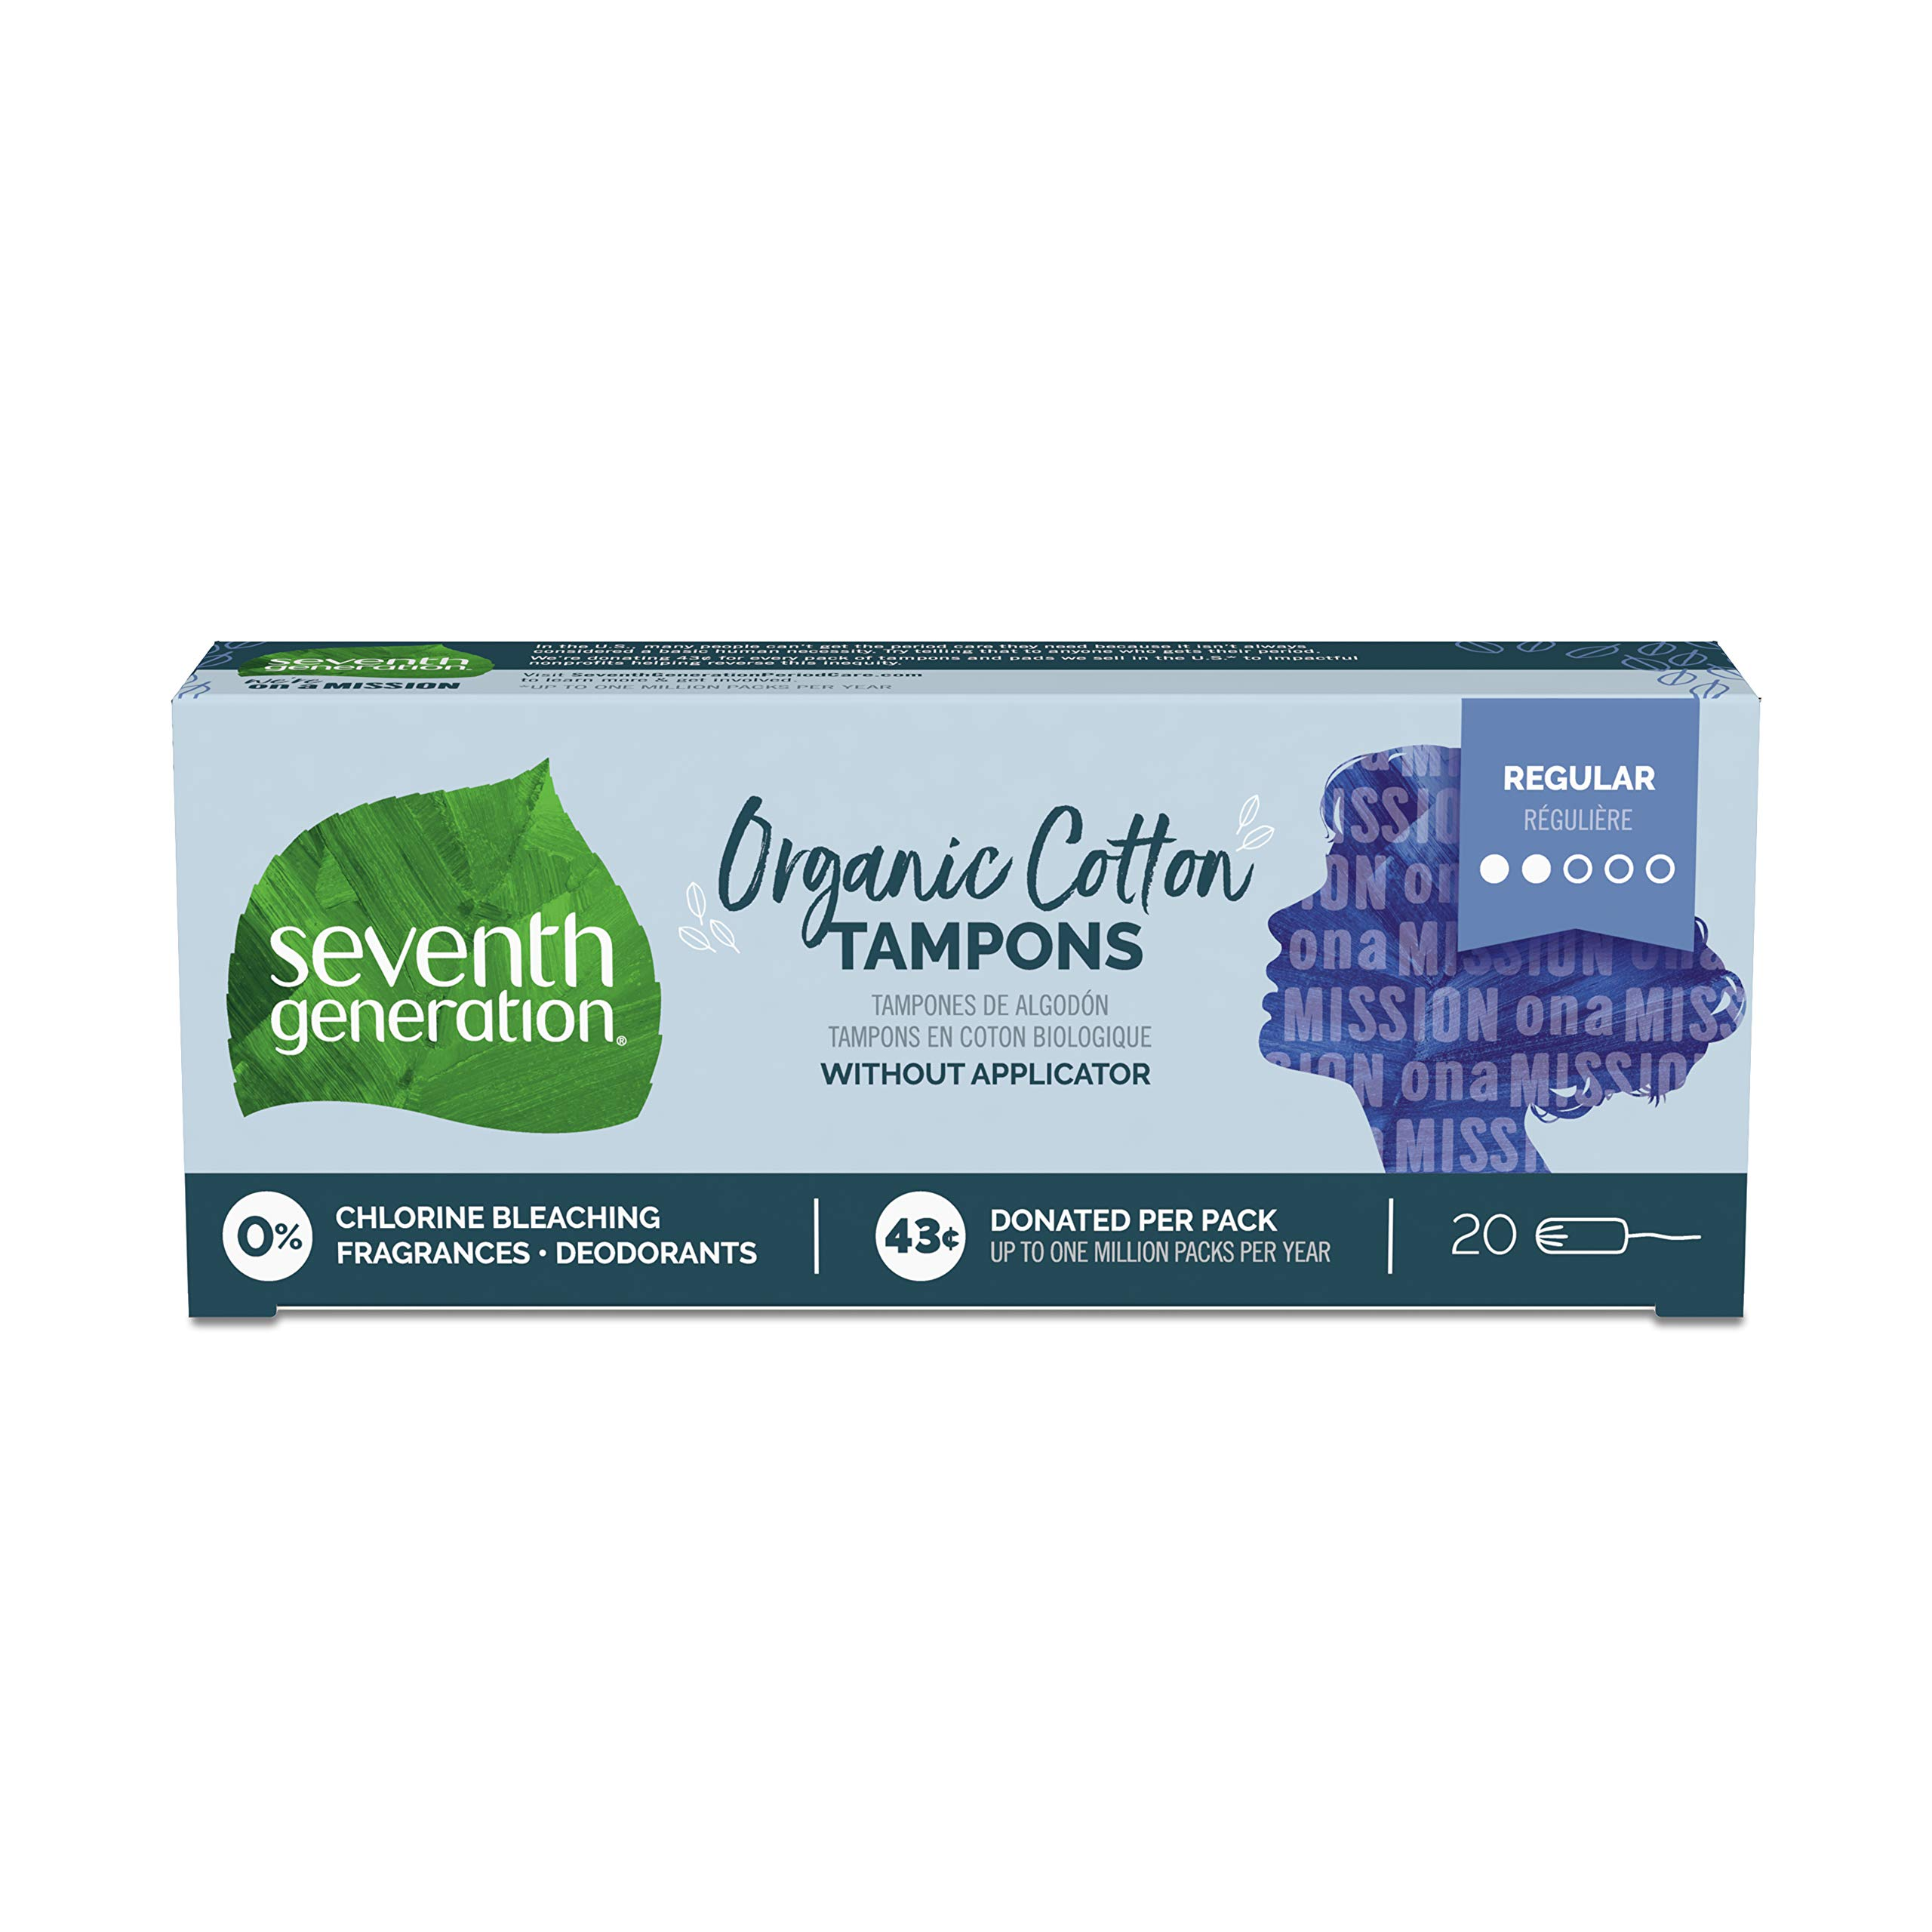 Seventh Generation Tampons, Non-Applicator, Organic Cotton, Regular Absorbency, 20 count, 12 Pack (Packaging May Vary) by Seventh Generation